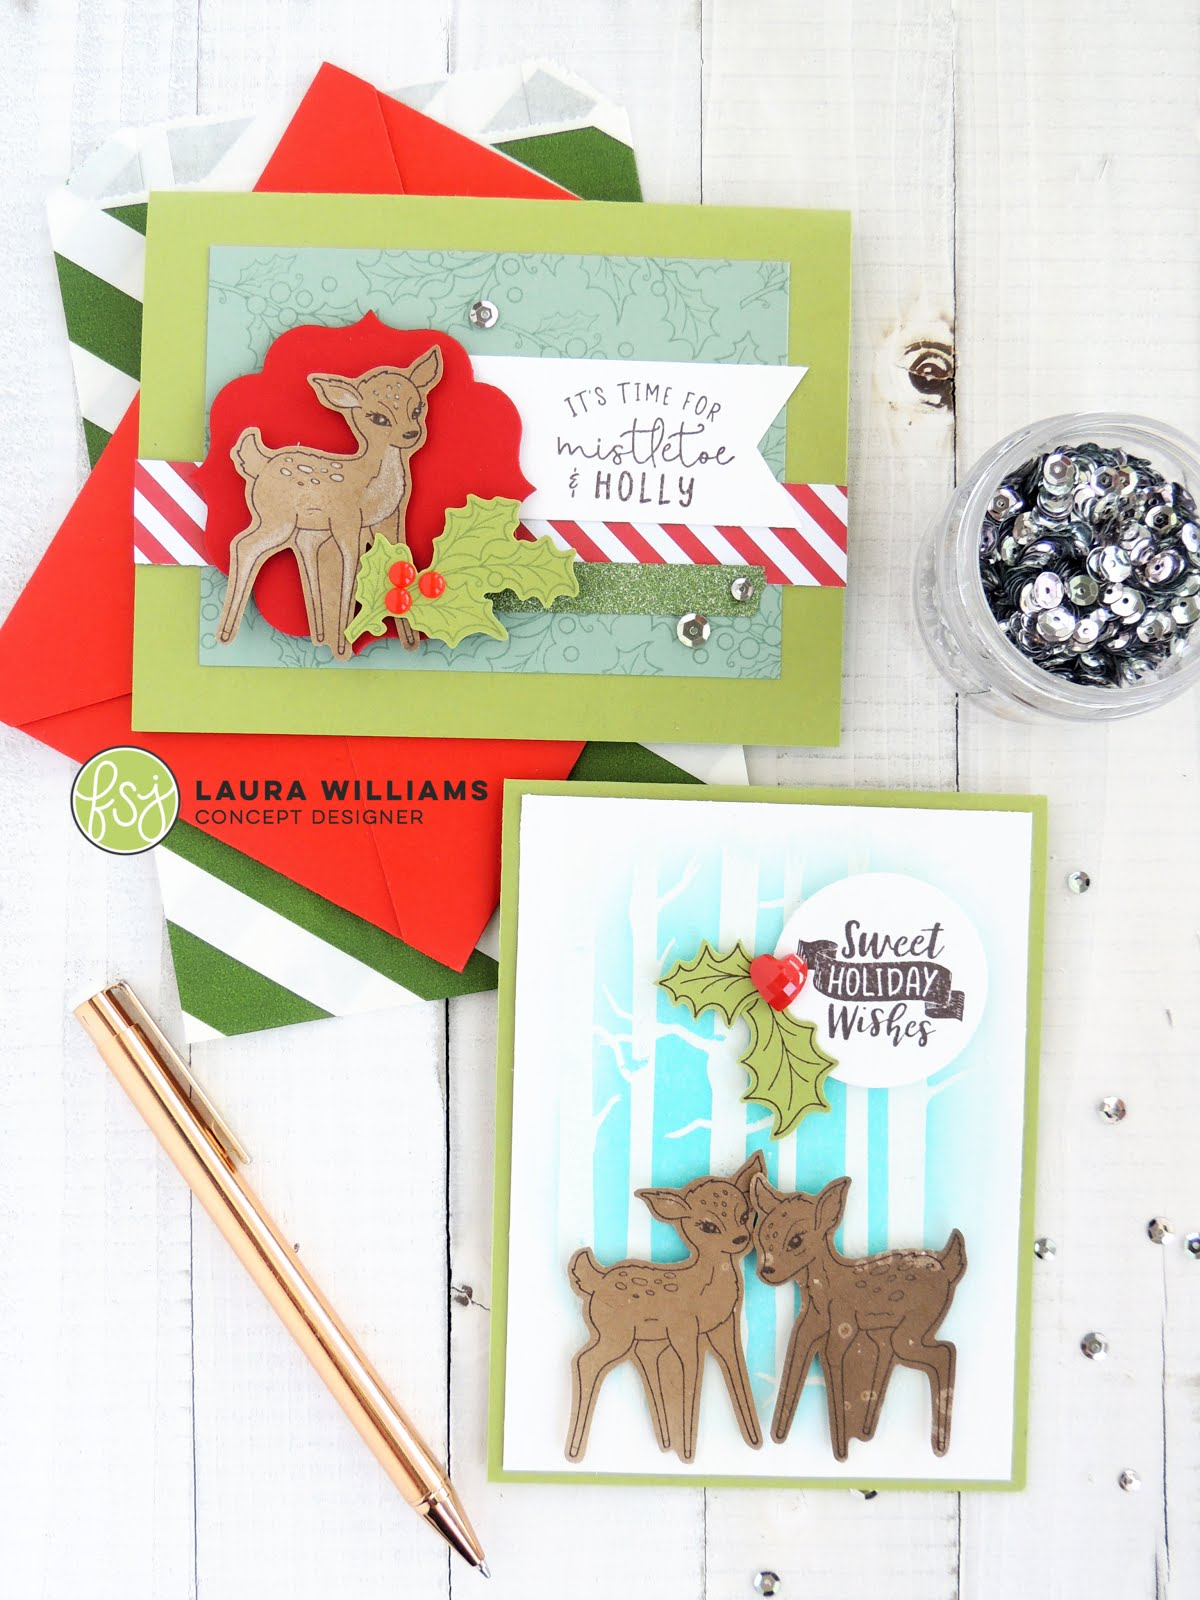 There's a brand new Stamp of the Month set from FSJ, and it will FILL your heart with holiday spirit and joy. It is absolutely darling - so without further ado, please meet Mistletoe and Holly. I'm in LOVE with these sweet deer. This month's stamp set includes the two deer, lots of holly and some sweet sentiments. There's plenty of opportunity to mix and match this set with some of your favorite dies and holiday stamps, and you'll have such fun creating holiday projects. #christmascard